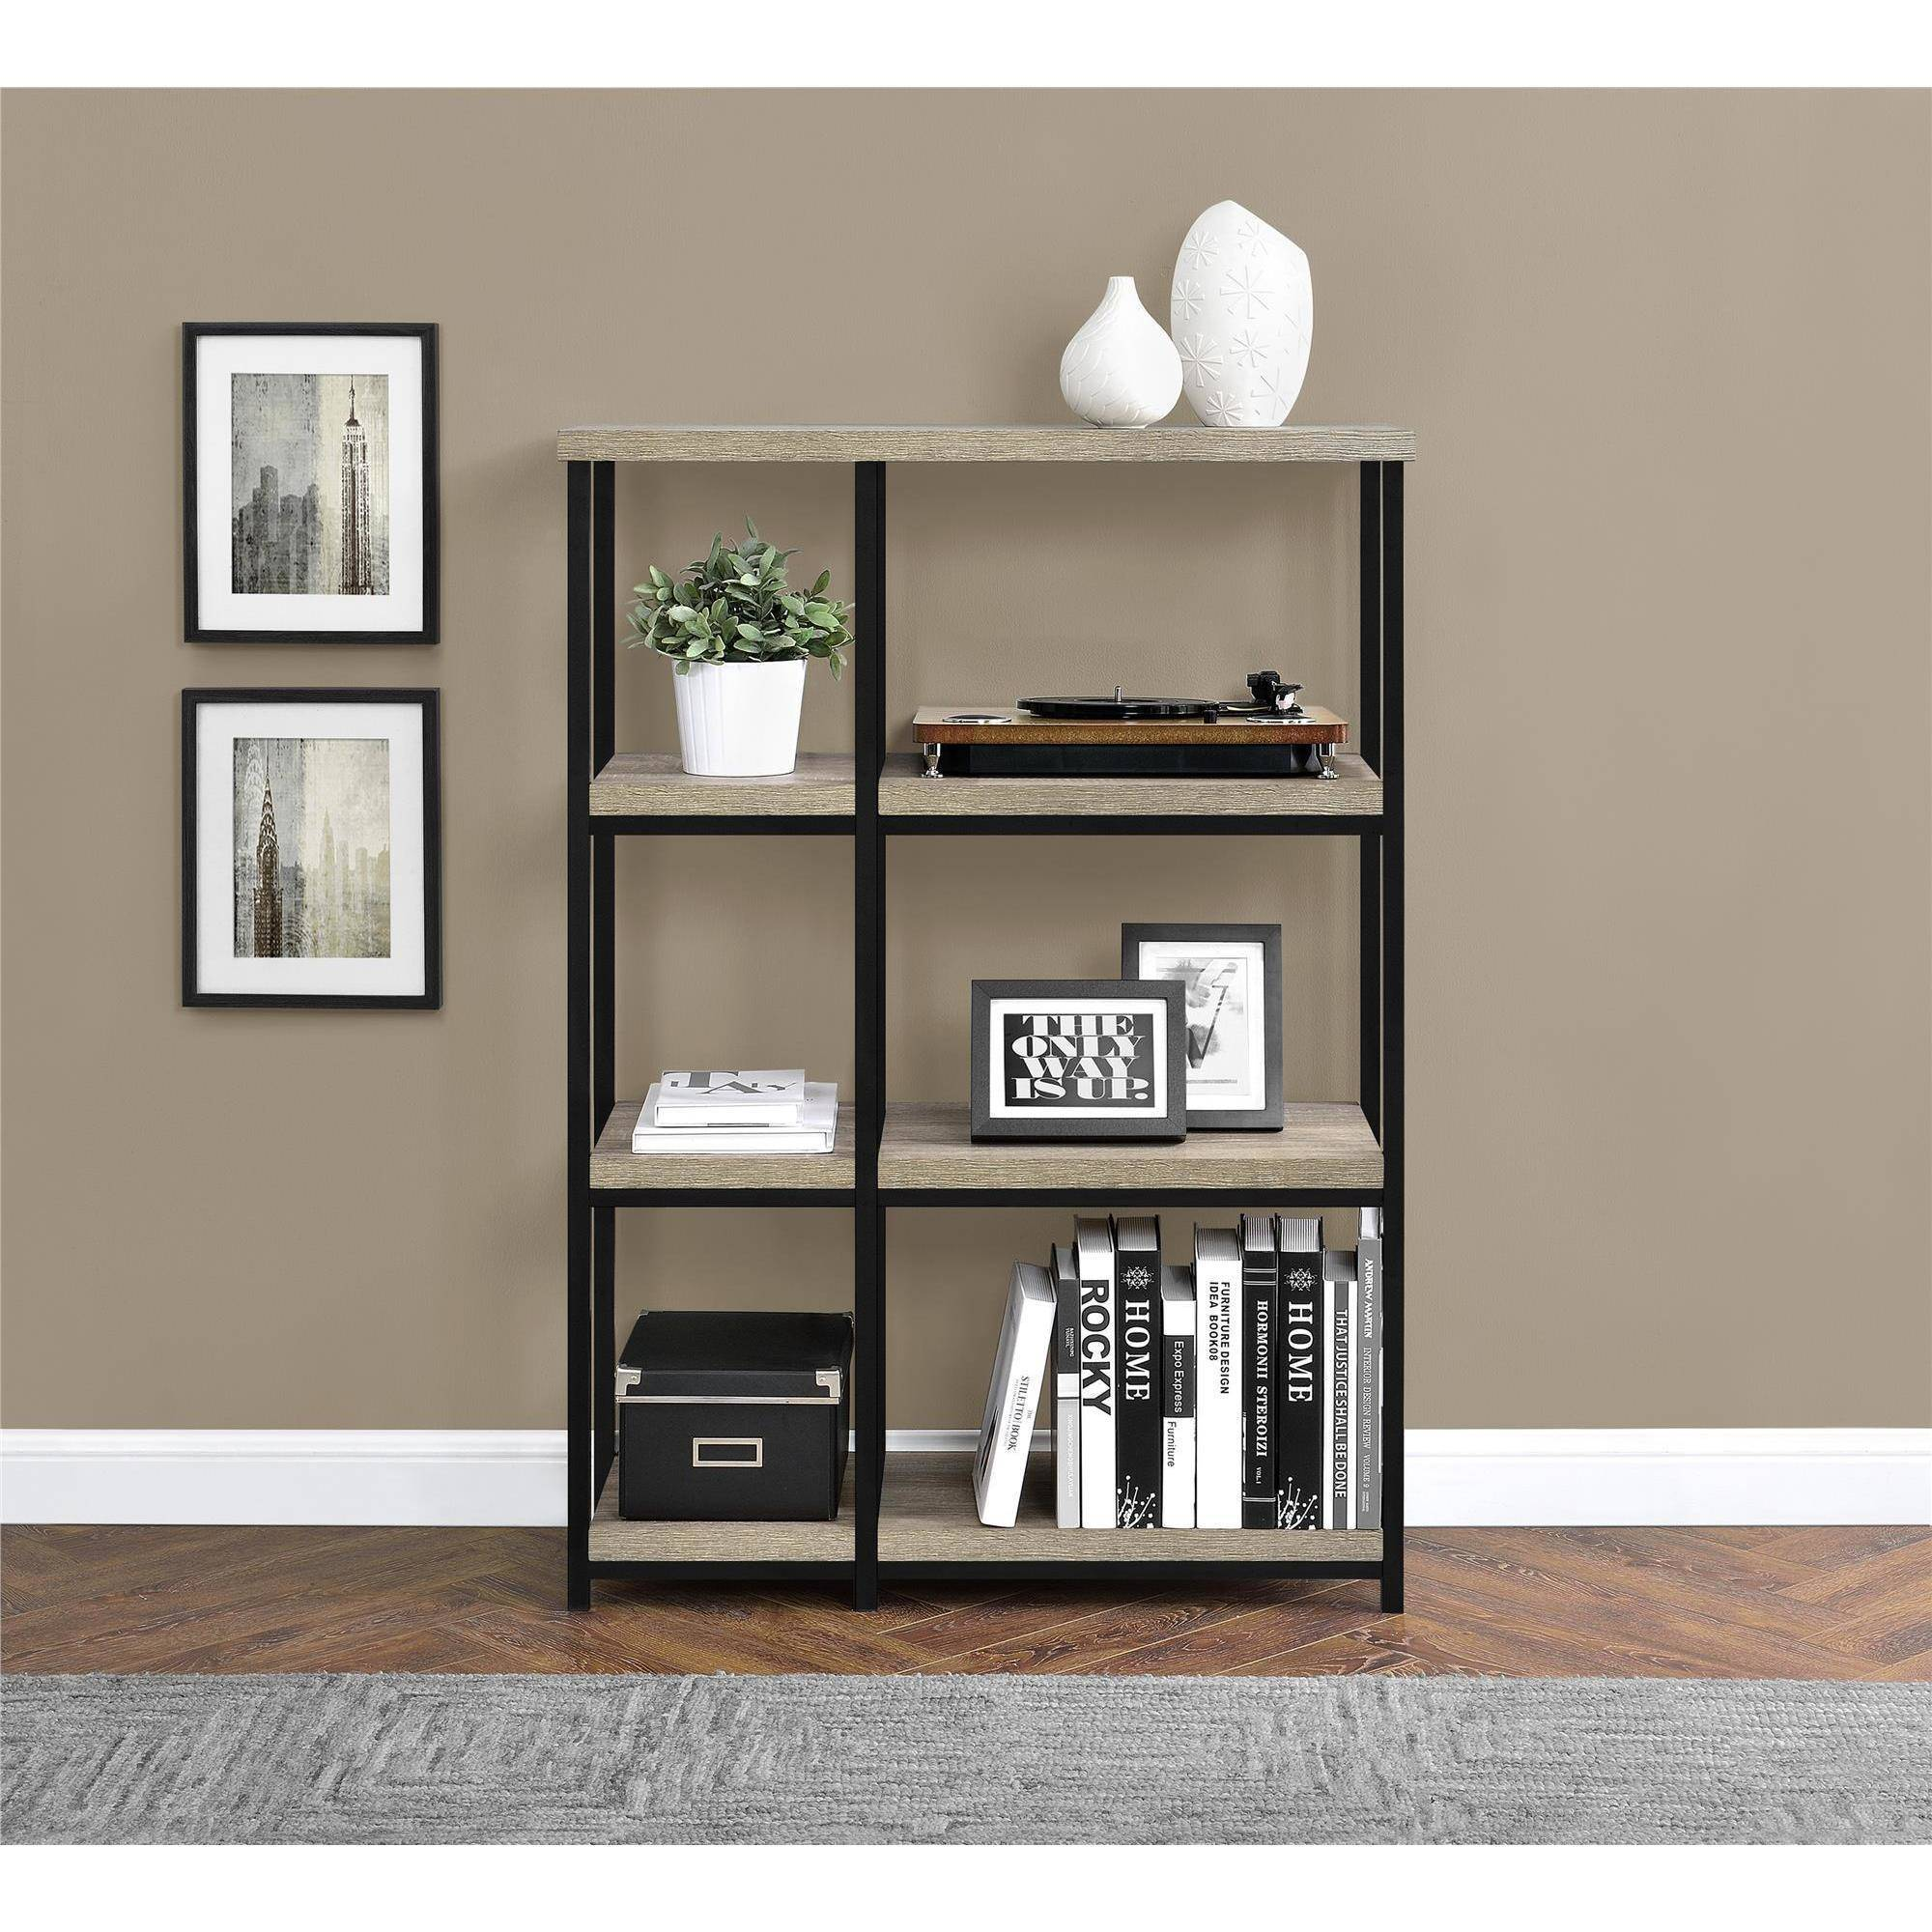 divider room dividers bookshelf youtube watch ideas bookcase